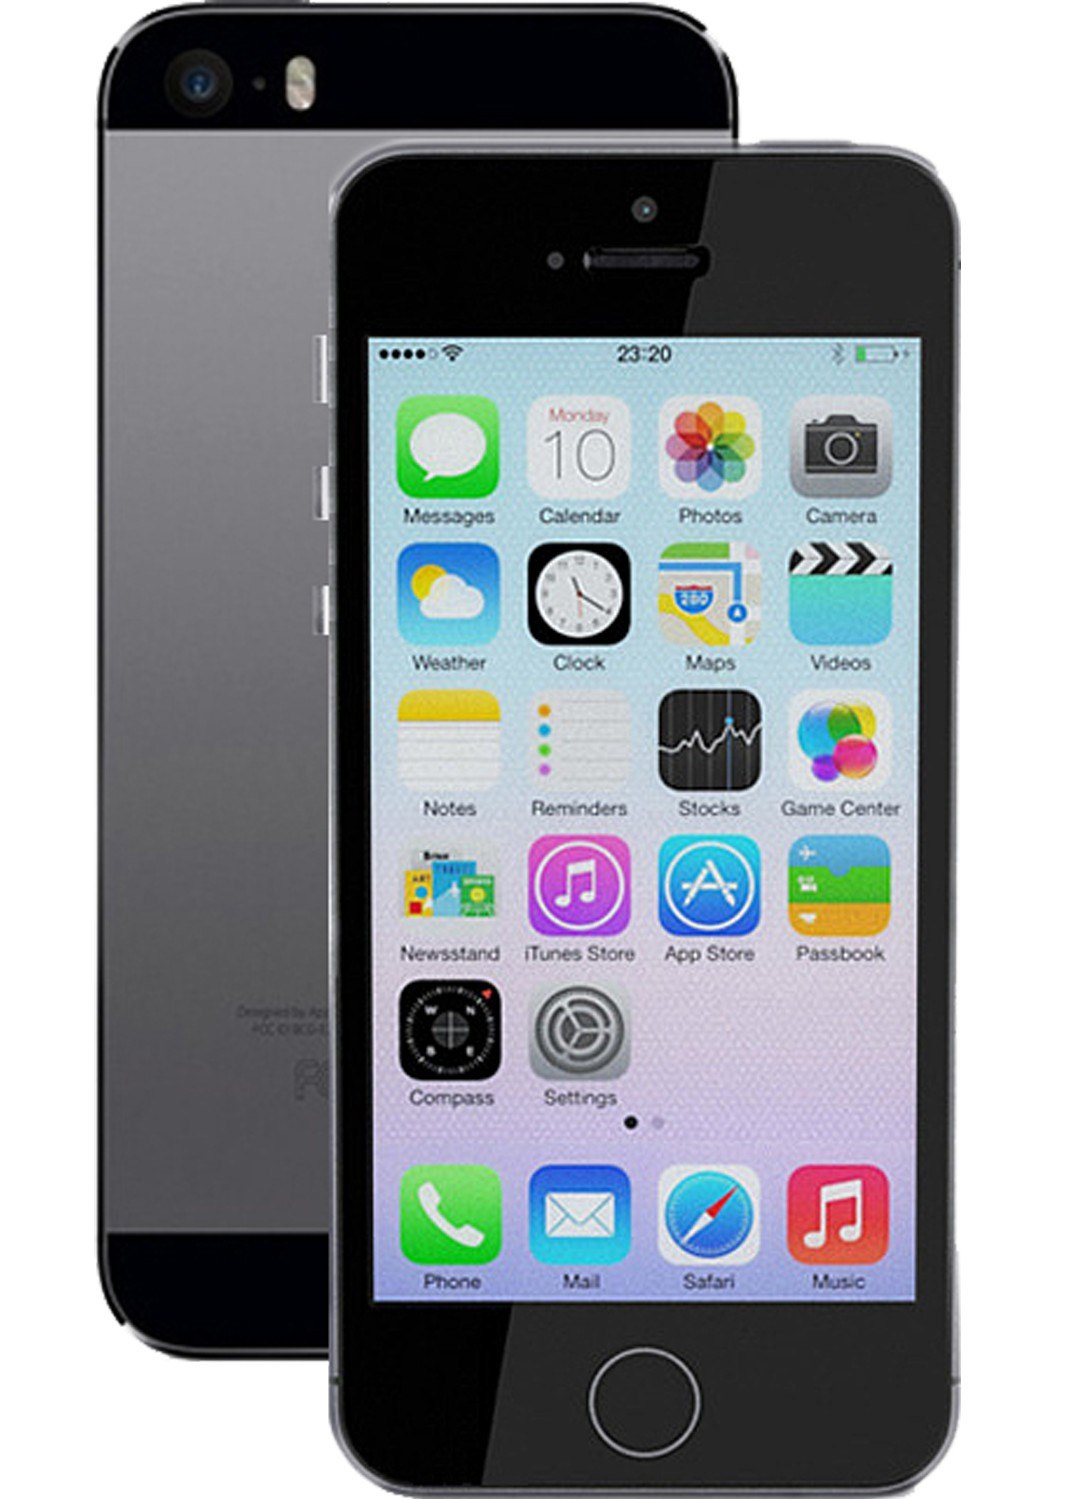 apple iphone 5s 16gb space grey lot 896135 allbids. Black Bedroom Furniture Sets. Home Design Ideas